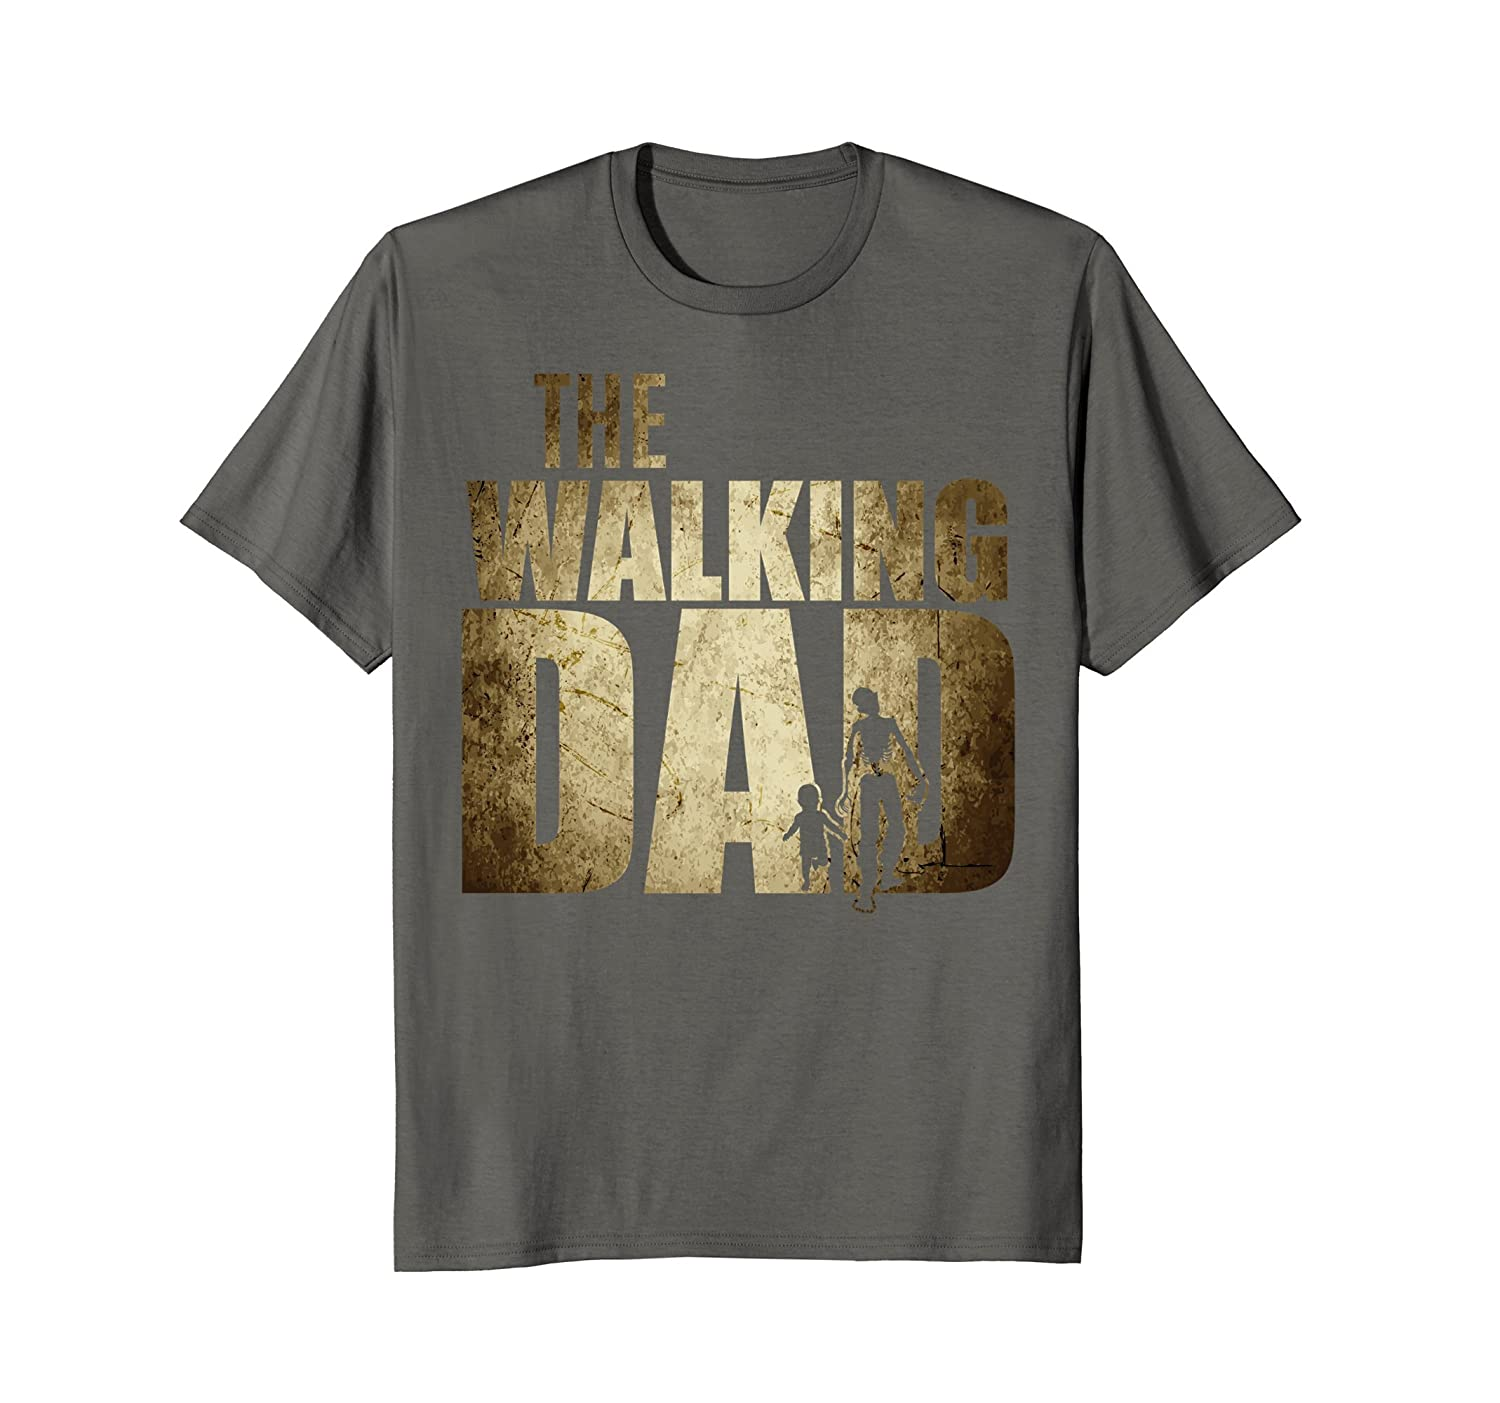 6d57d4109 Imported Machine wash cold with like colors, dry low heat. Walking Dad  Shirt, Father's Day, Funny Halloween shirt. Dad Gifts ...